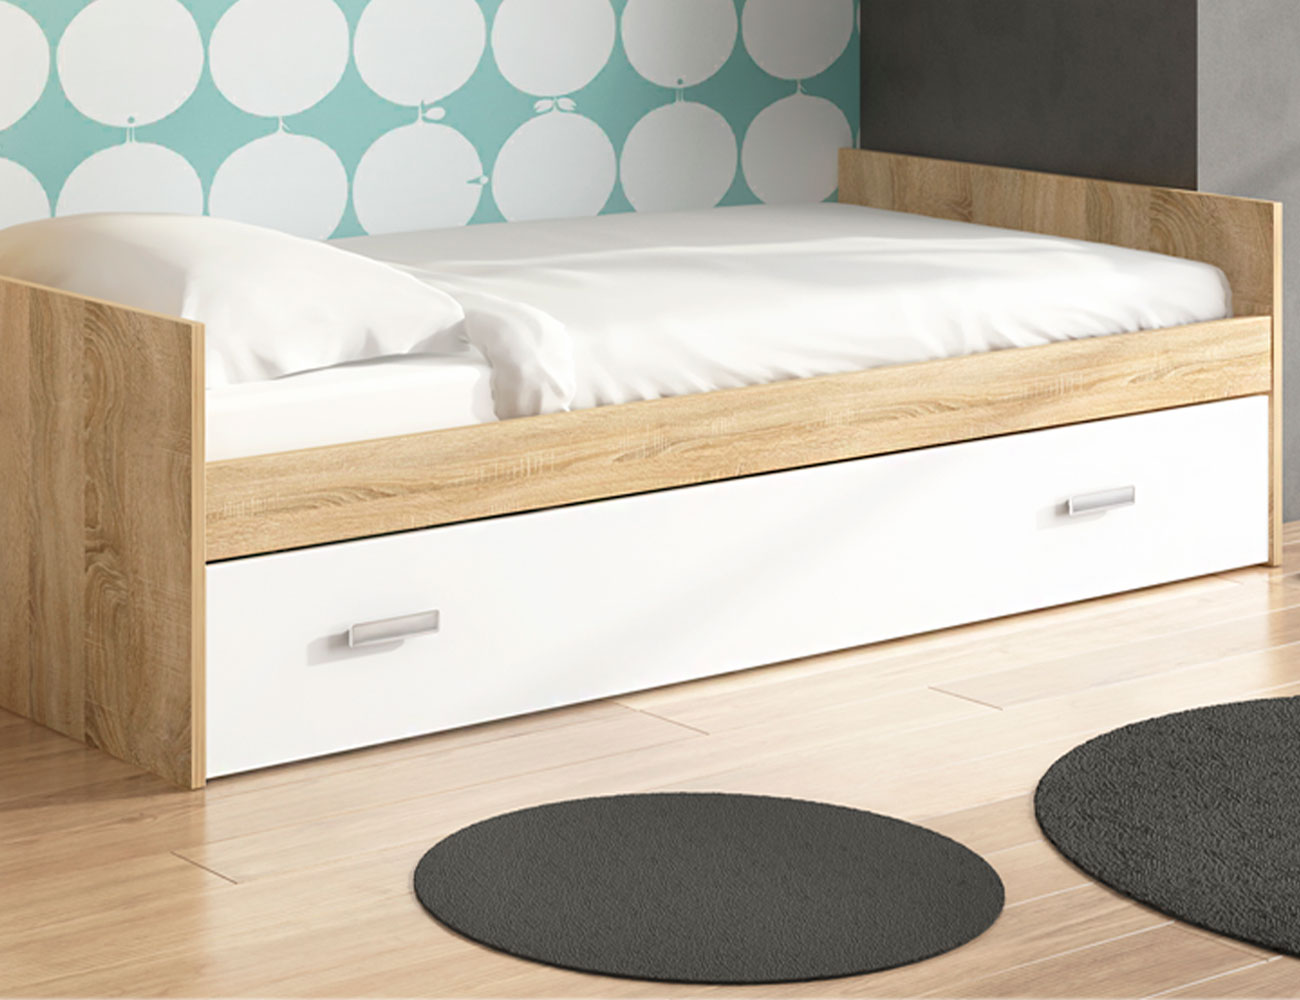 Cama nido frontal cambrian blanco